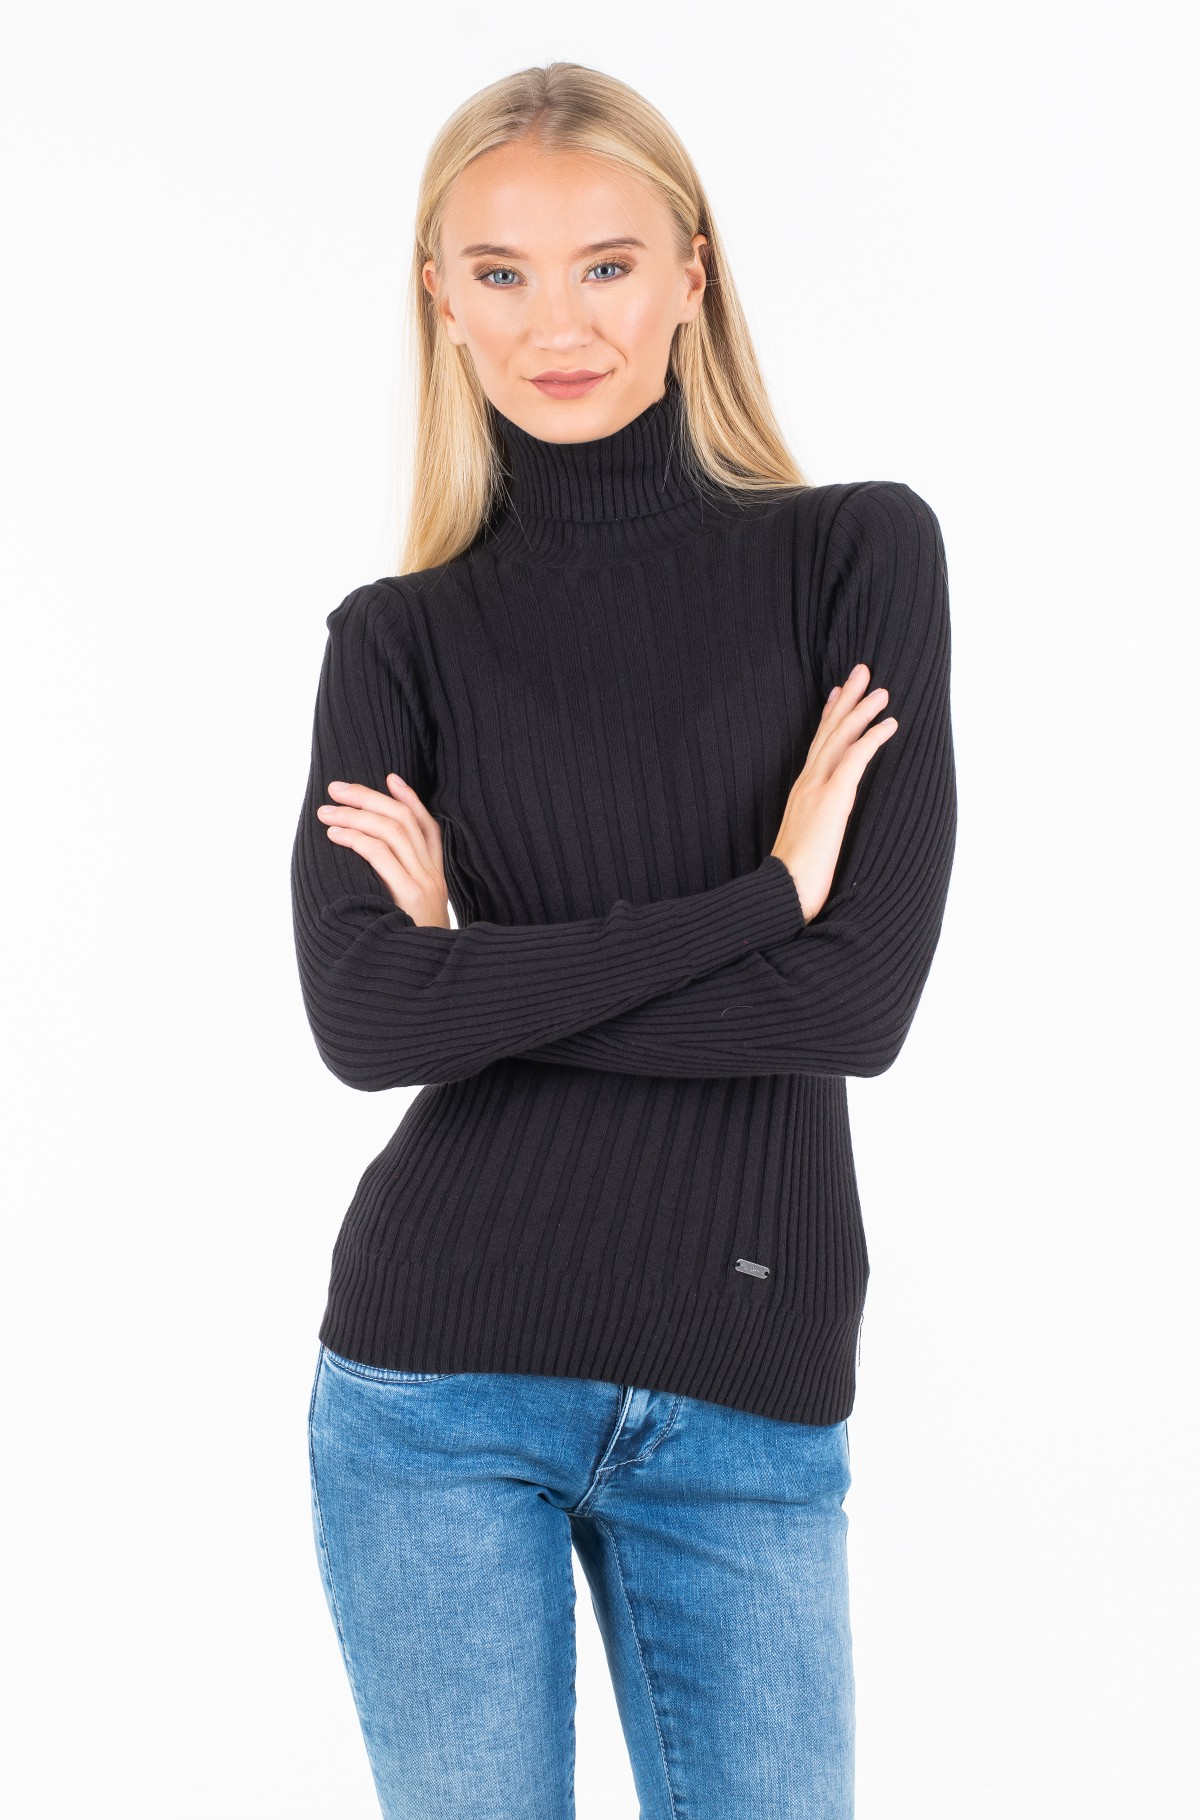 Sweater KIM/PL701530-full-1